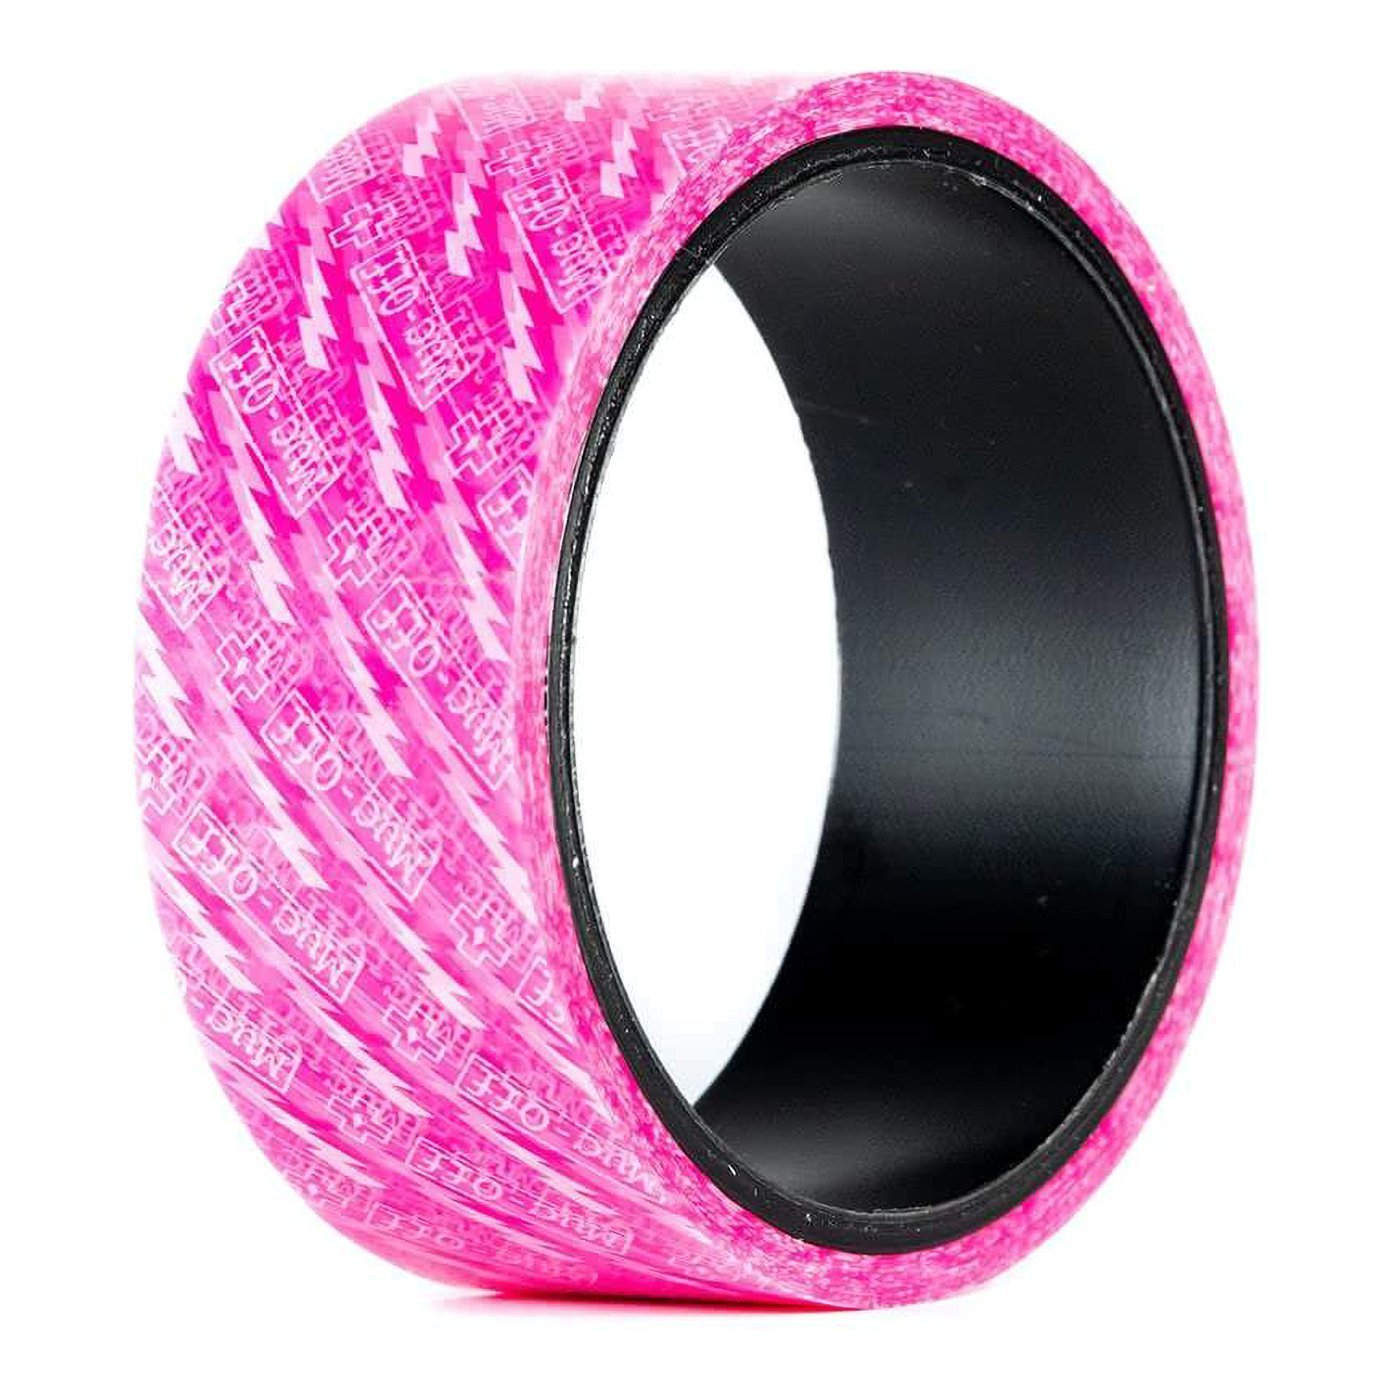 Muc-Off Tubeless rim tape 35mm on white background